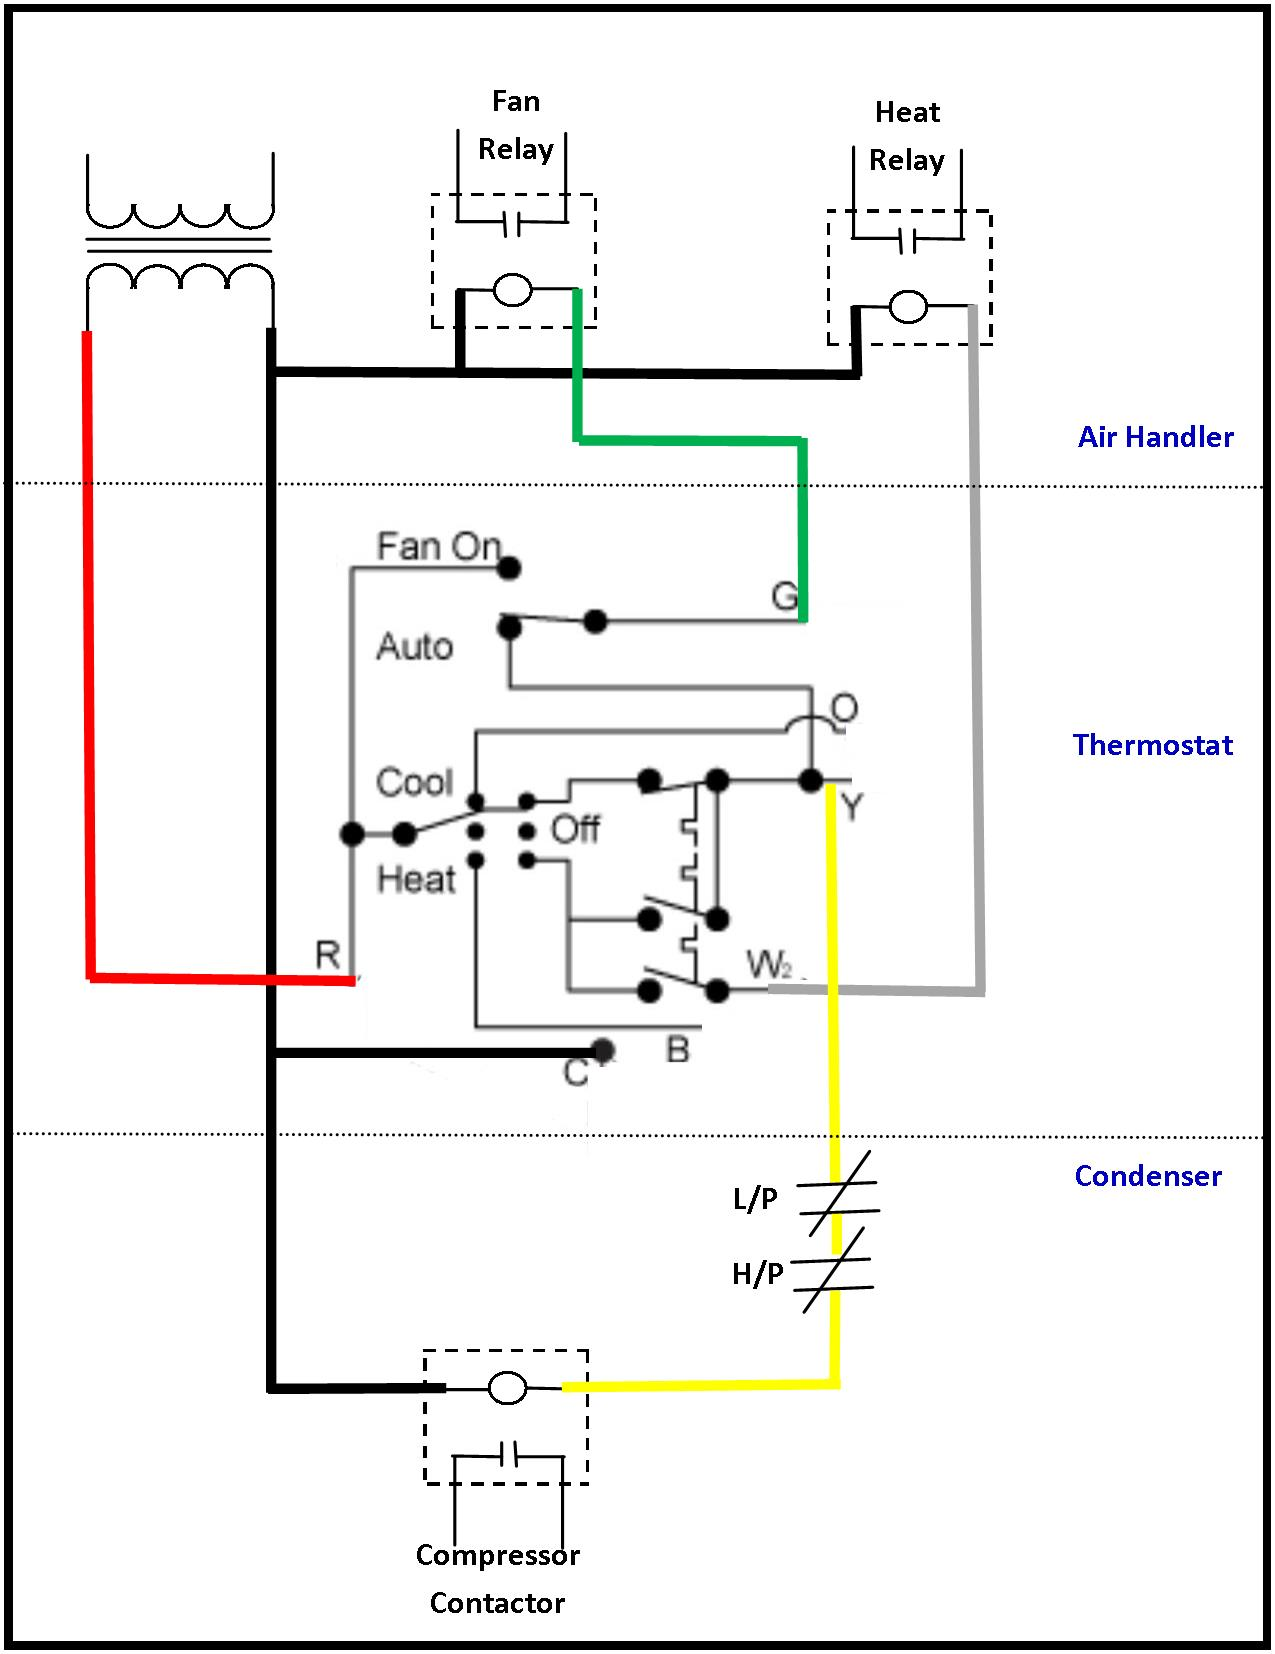 Hvac System Wiring | Wiring Diagram on